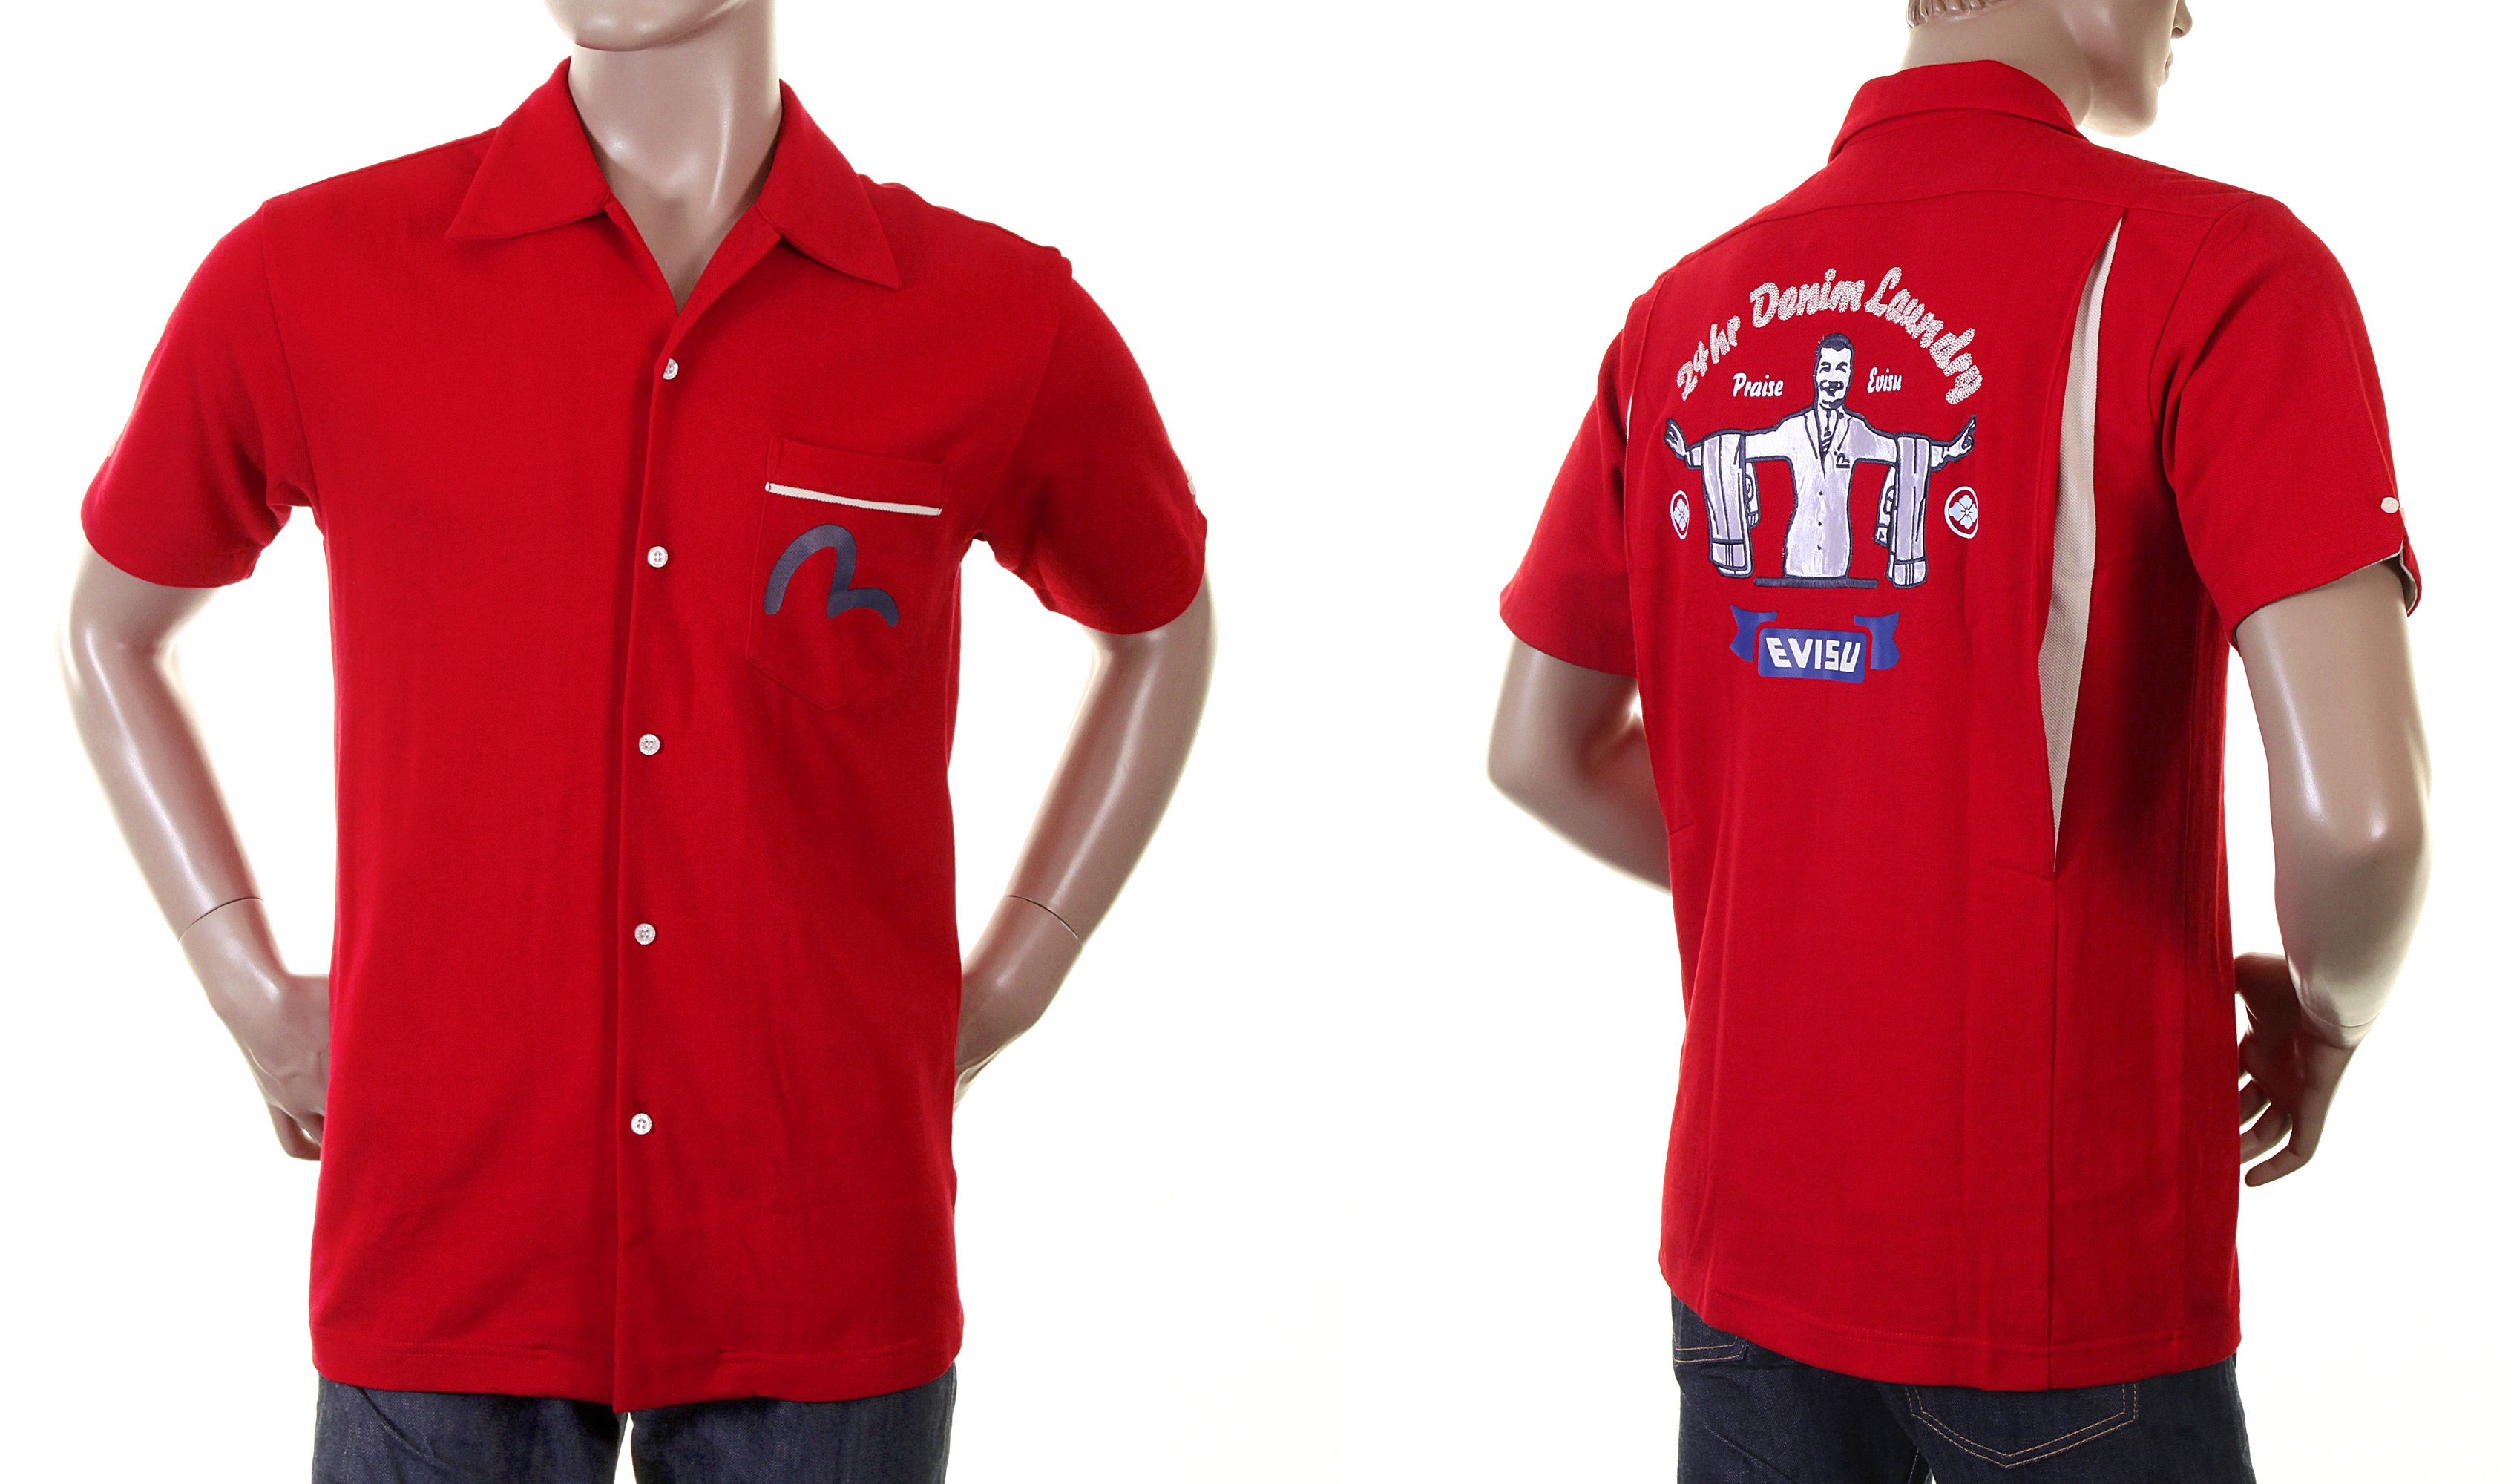 red shirt from Evisu